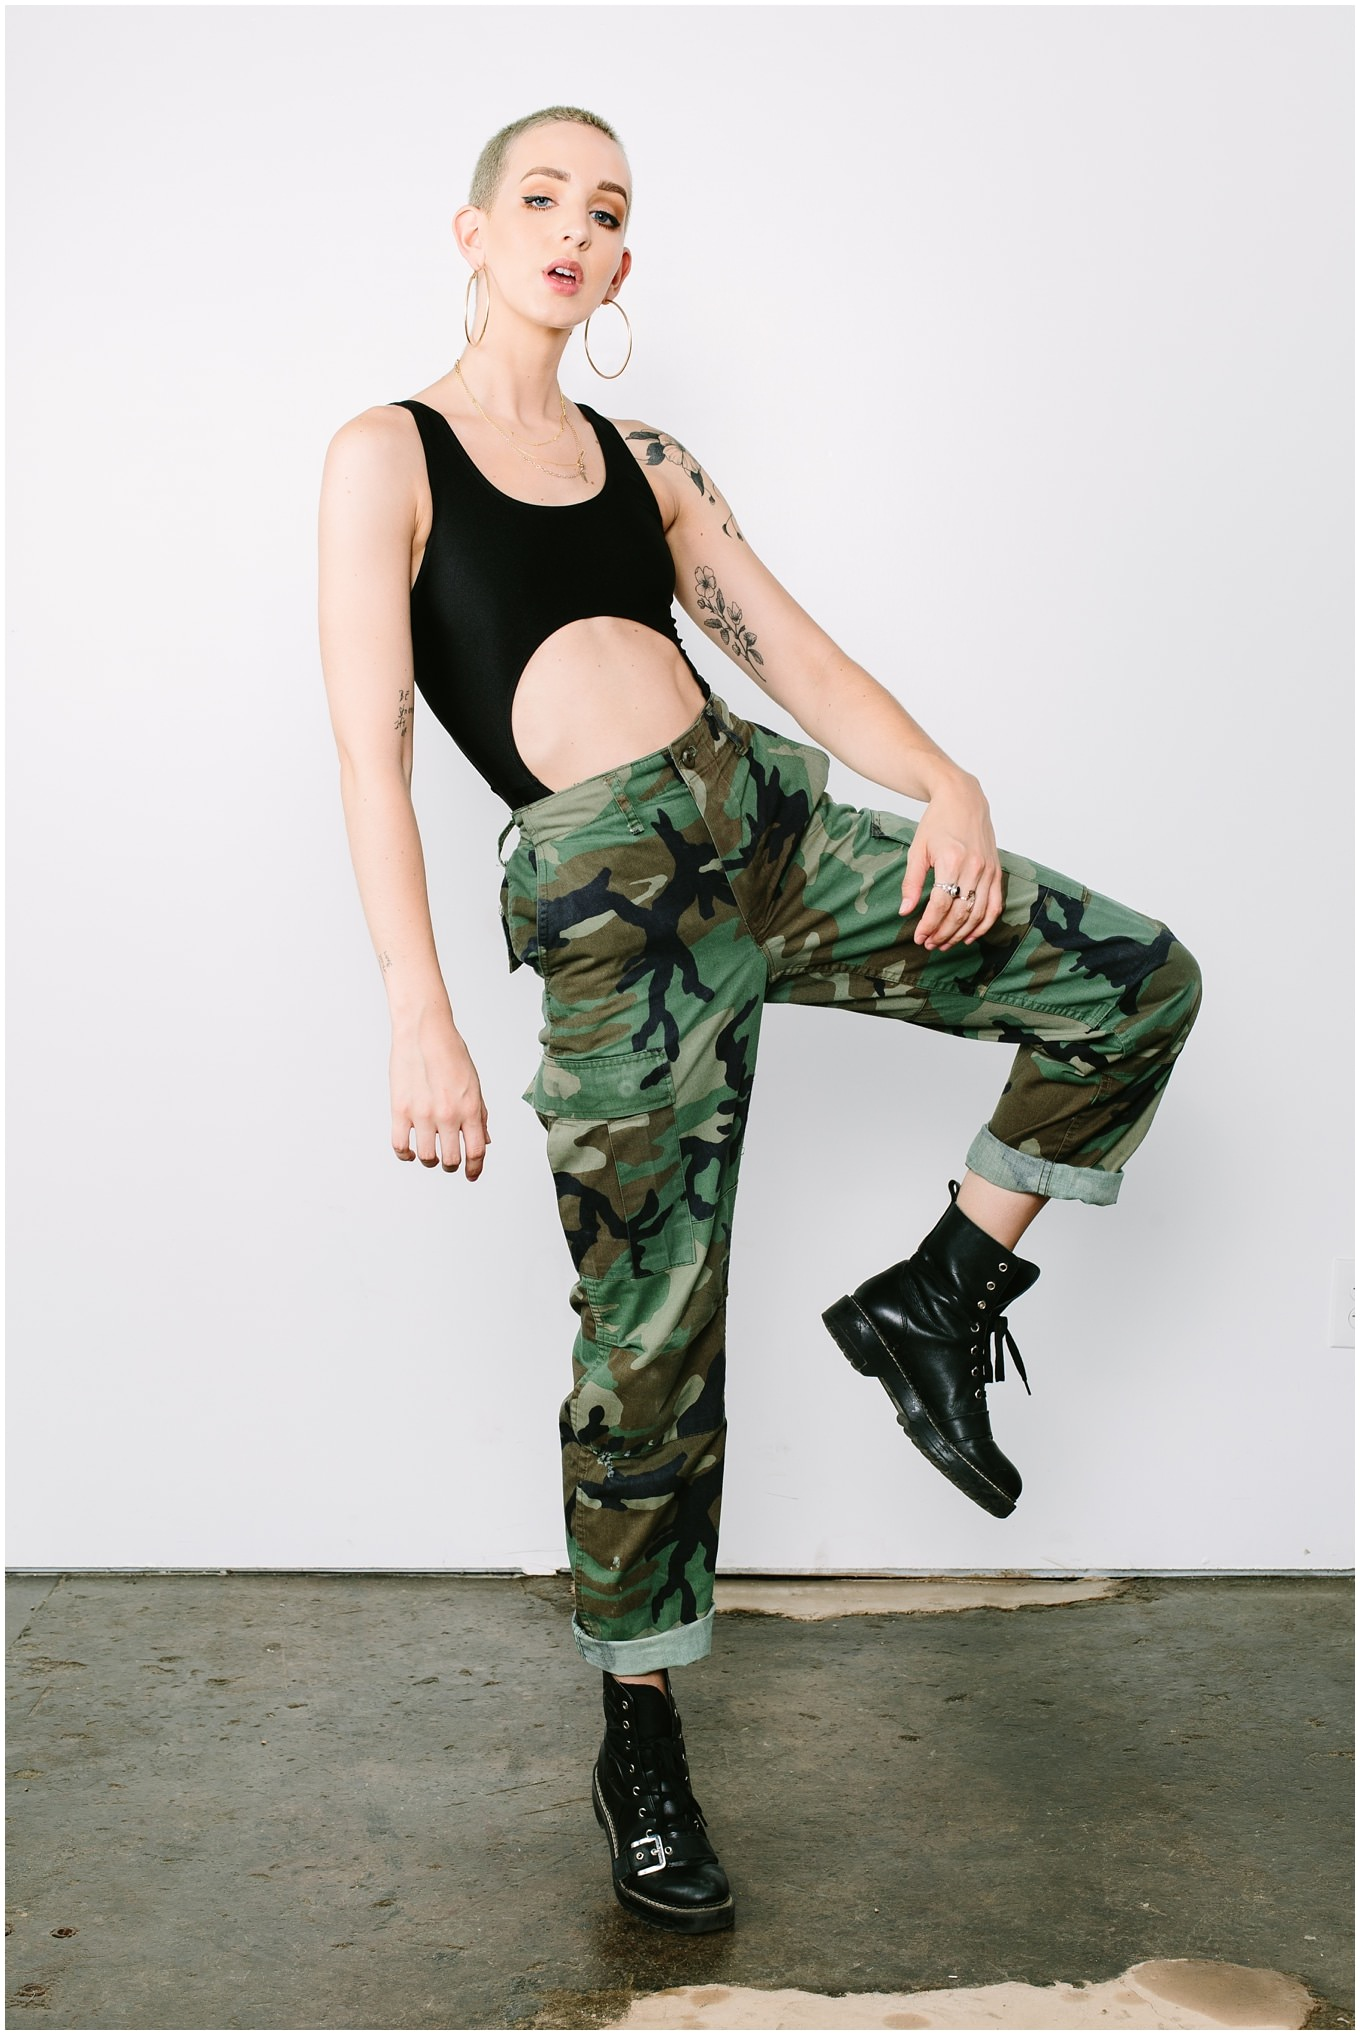 adam lowe photography, commercial,editorial, fashion, style, design, model, columbus, ohio, modern, forever 21, H&M, camo, hipster, canon, chromedge studios, lifestyle,